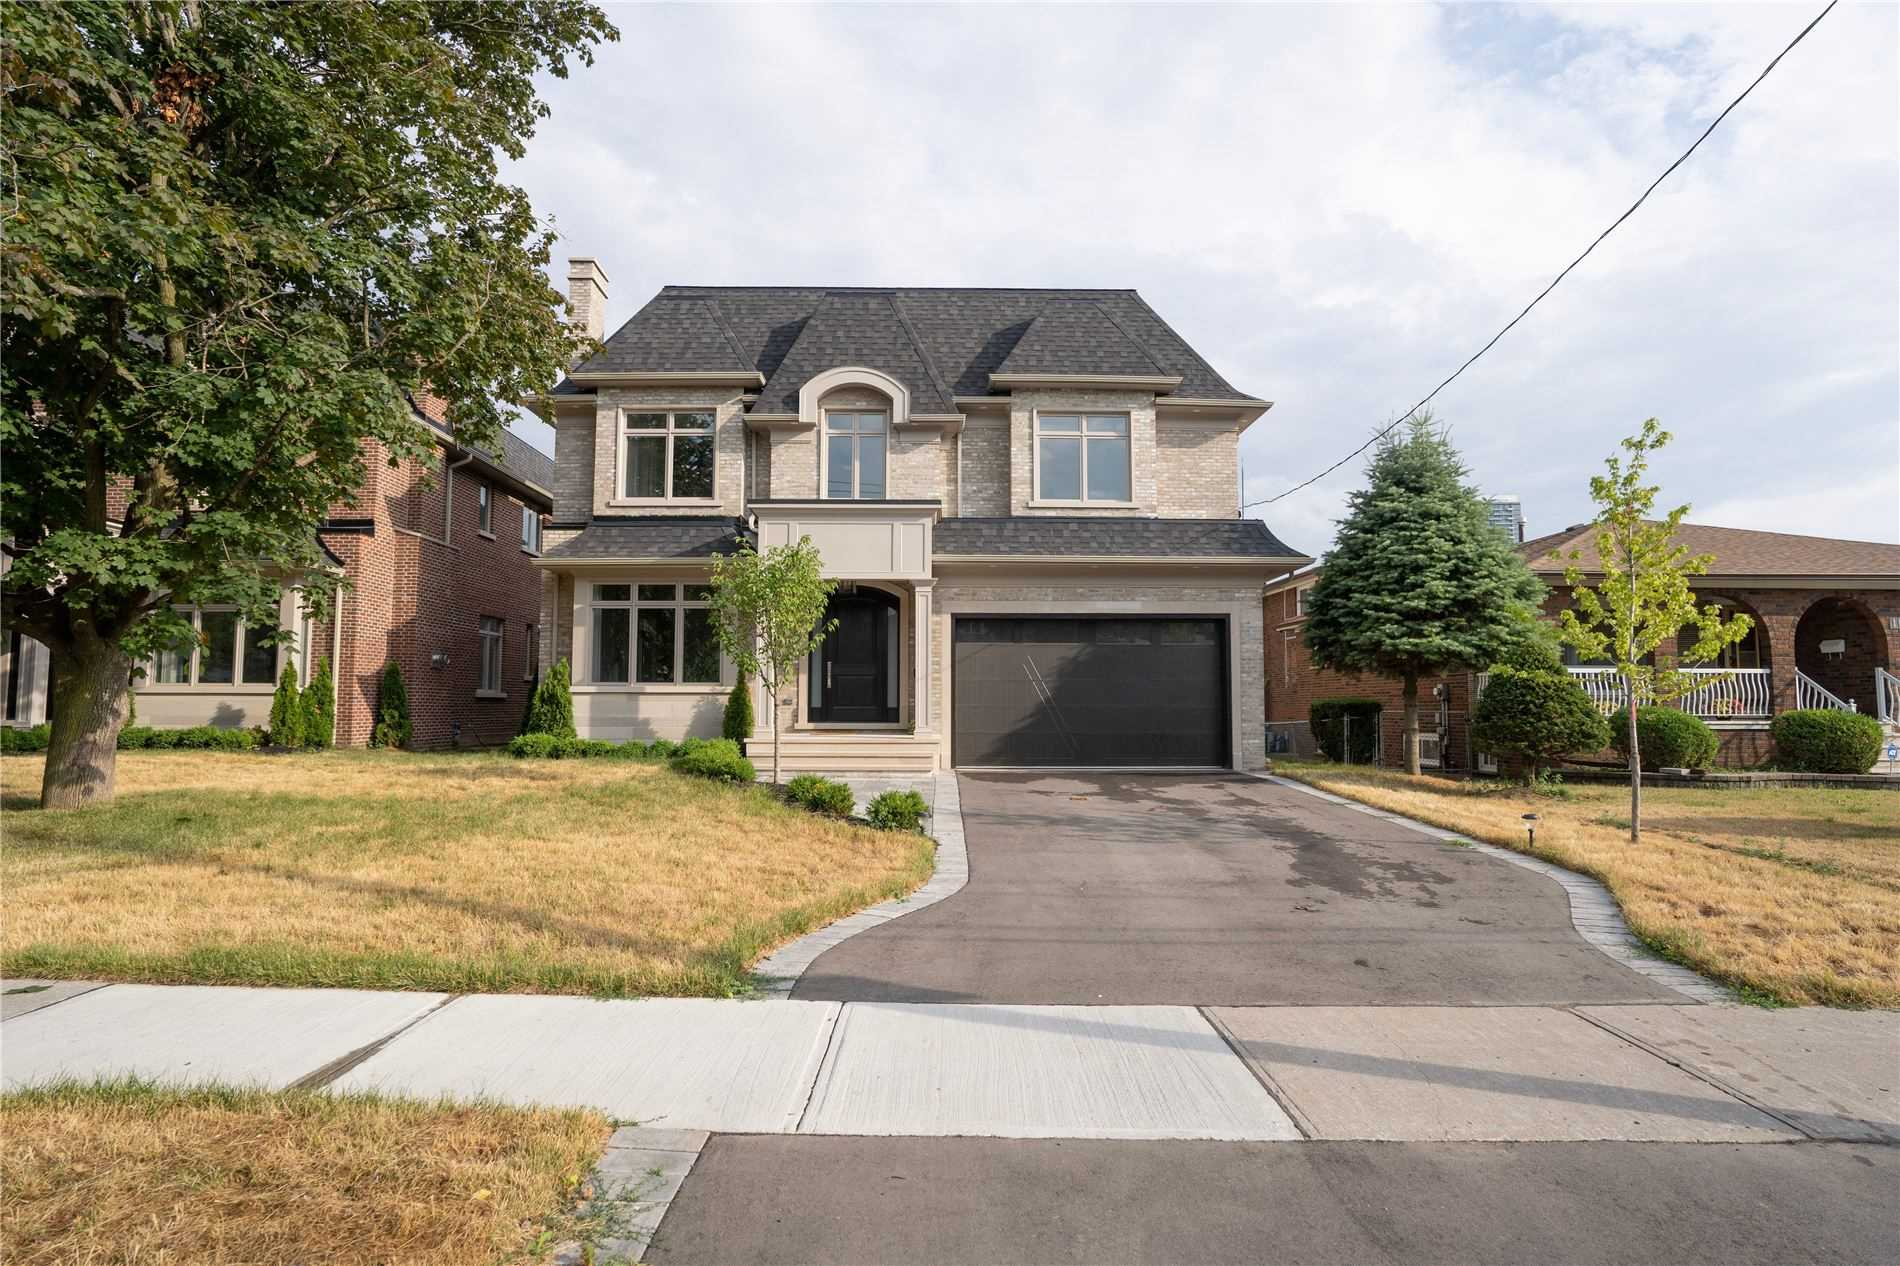 165 Old Sheppard Ave, Toronto, Ontario M2J3M2, 4 Bedrooms Bedrooms, 4 Rooms Rooms,6 BathroomsBathrooms,Detached,For Sale,Old Sheppard,C4841980